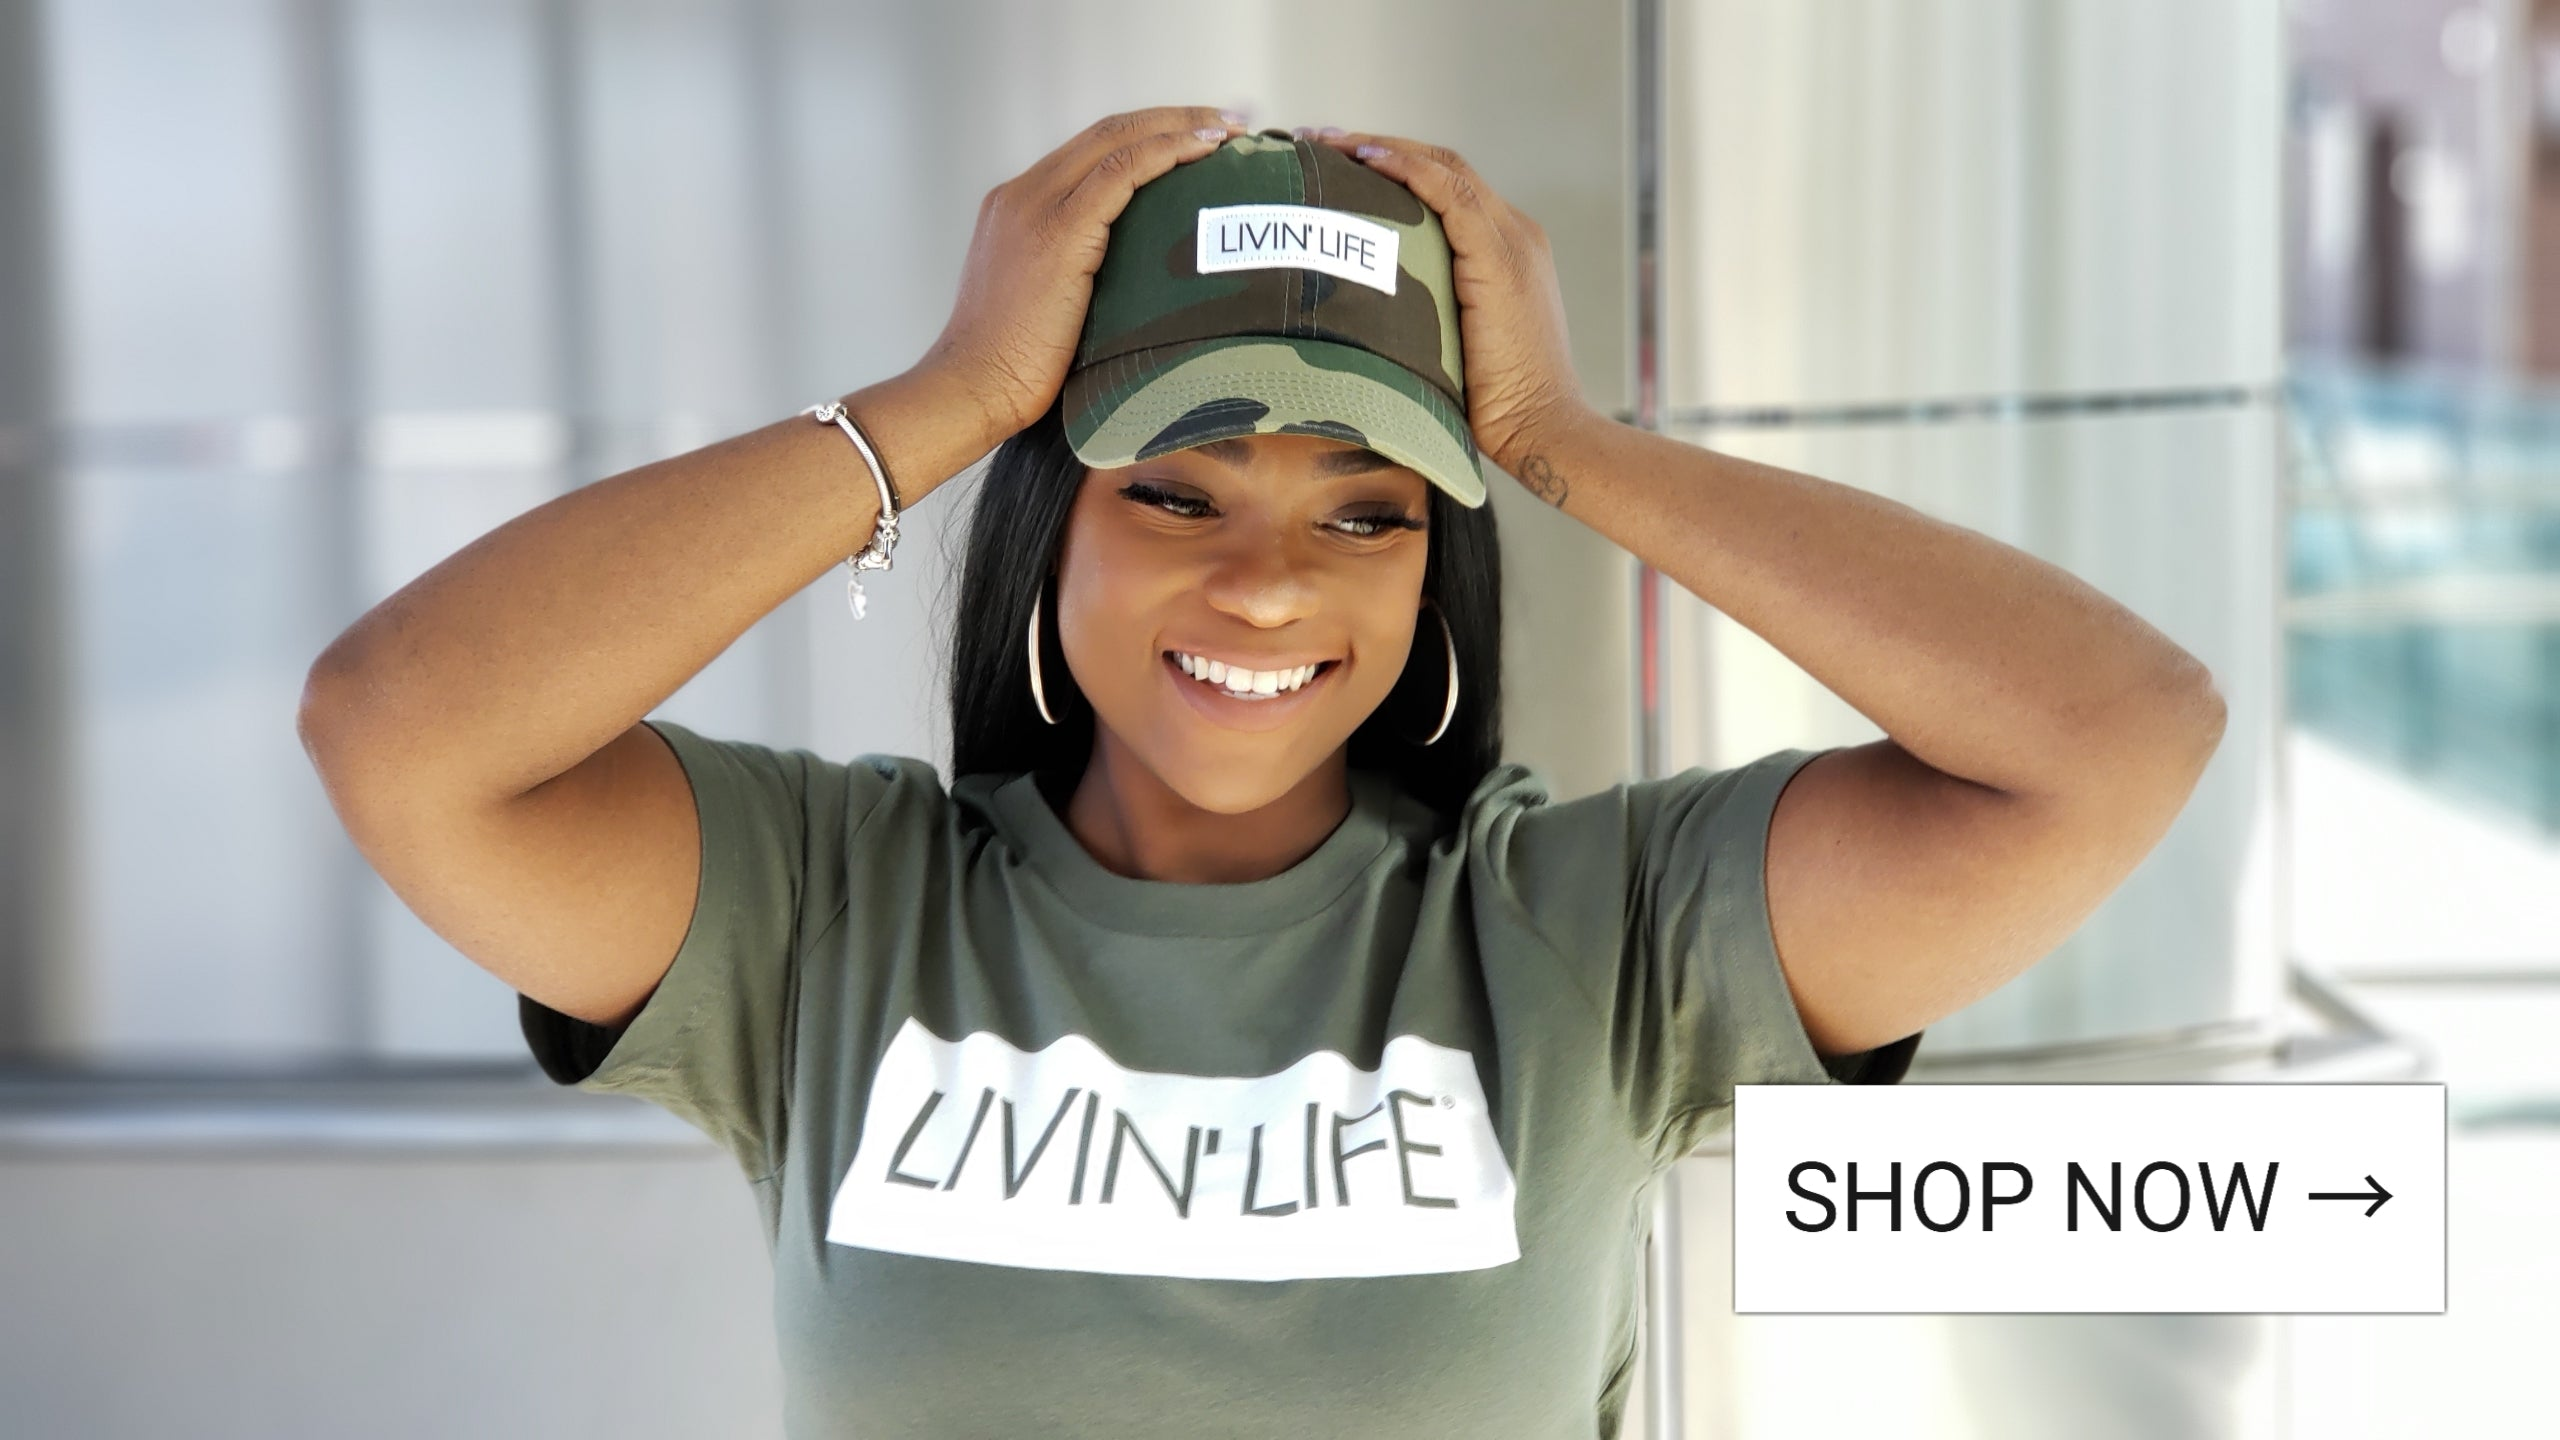 Shop All LIVIN' LIFE Products